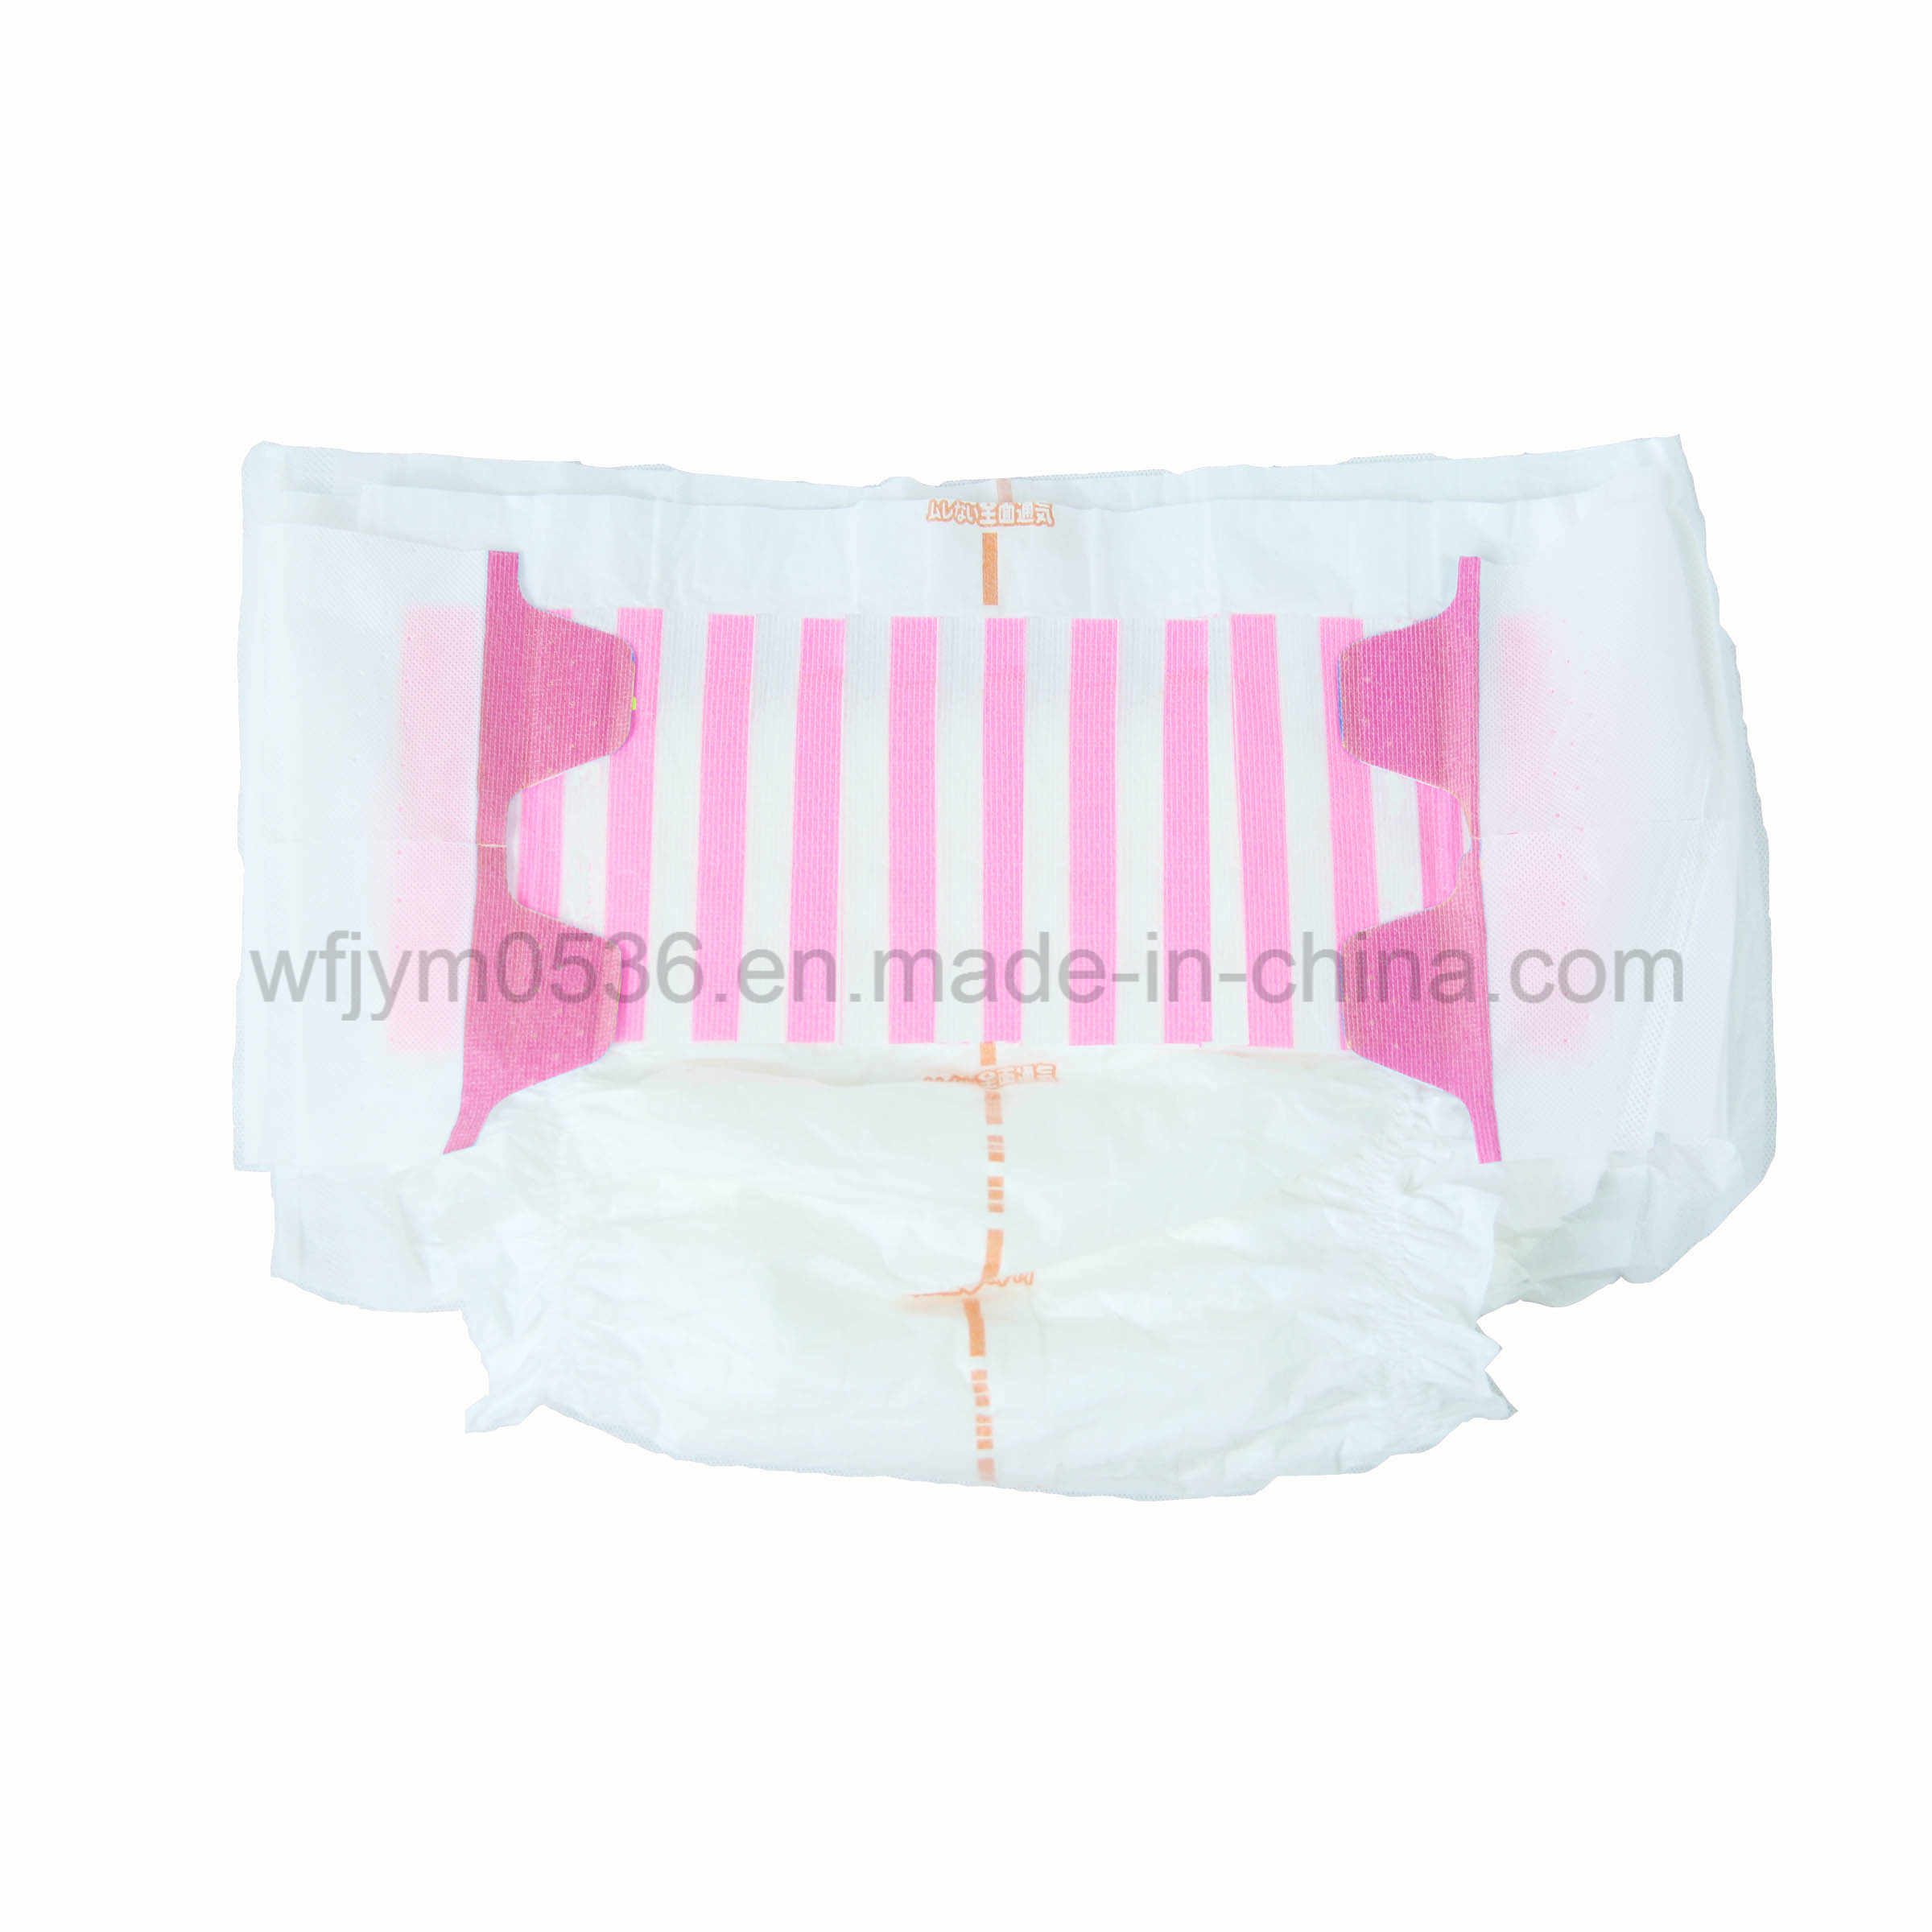 High Quality and Competitive velcro Magic tape Disposable Adult Diapers